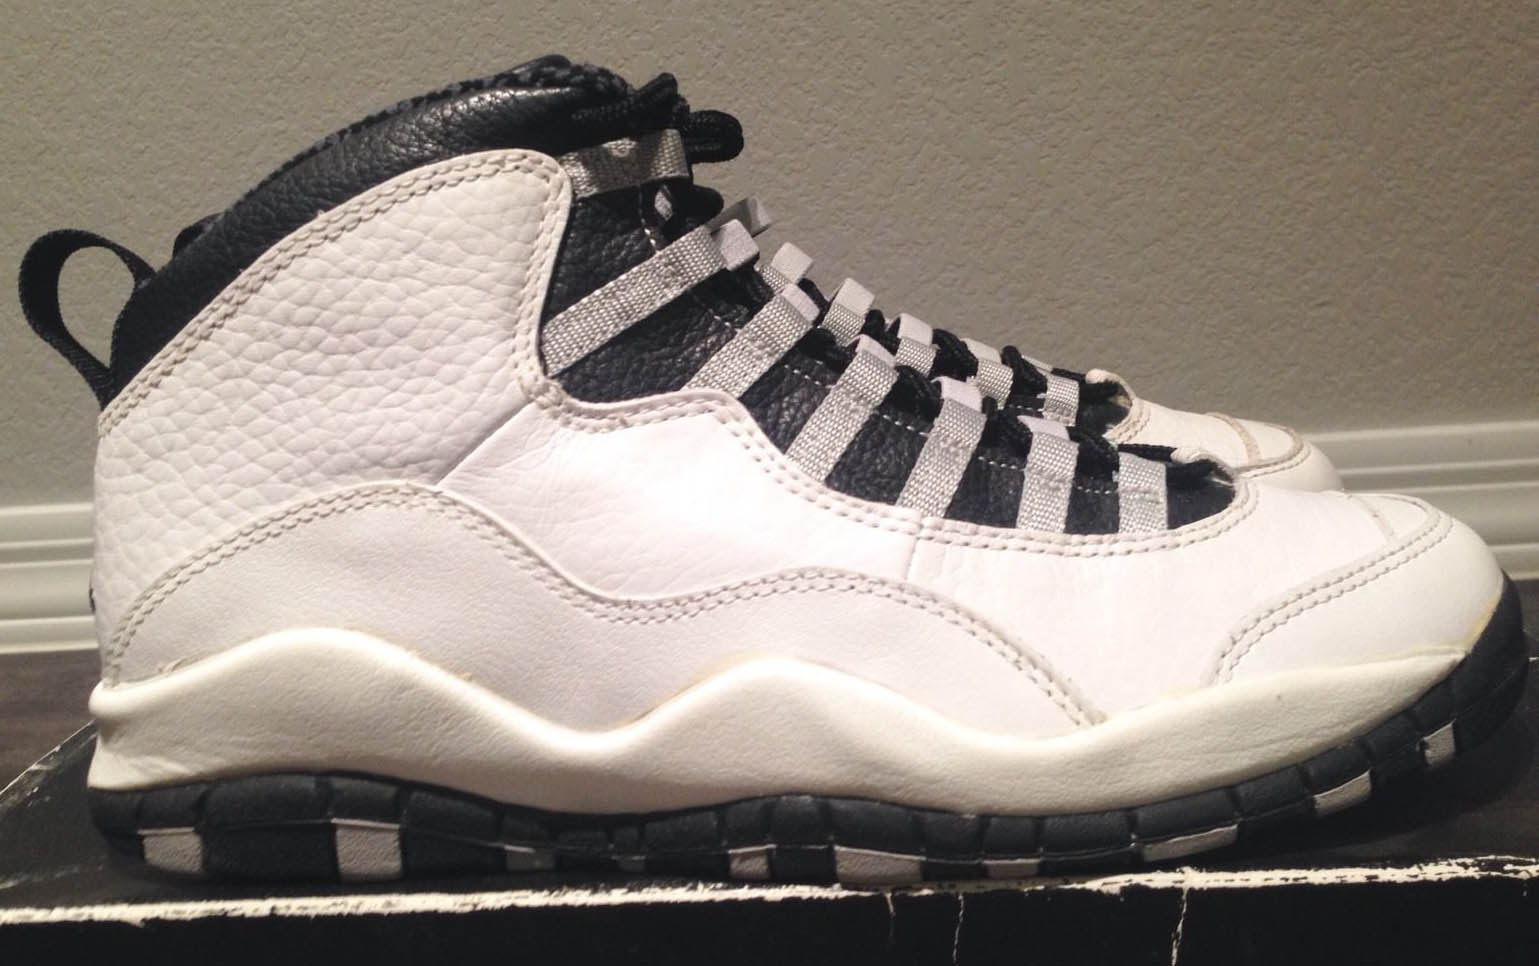 Air Jordan Steel Toe Shoes